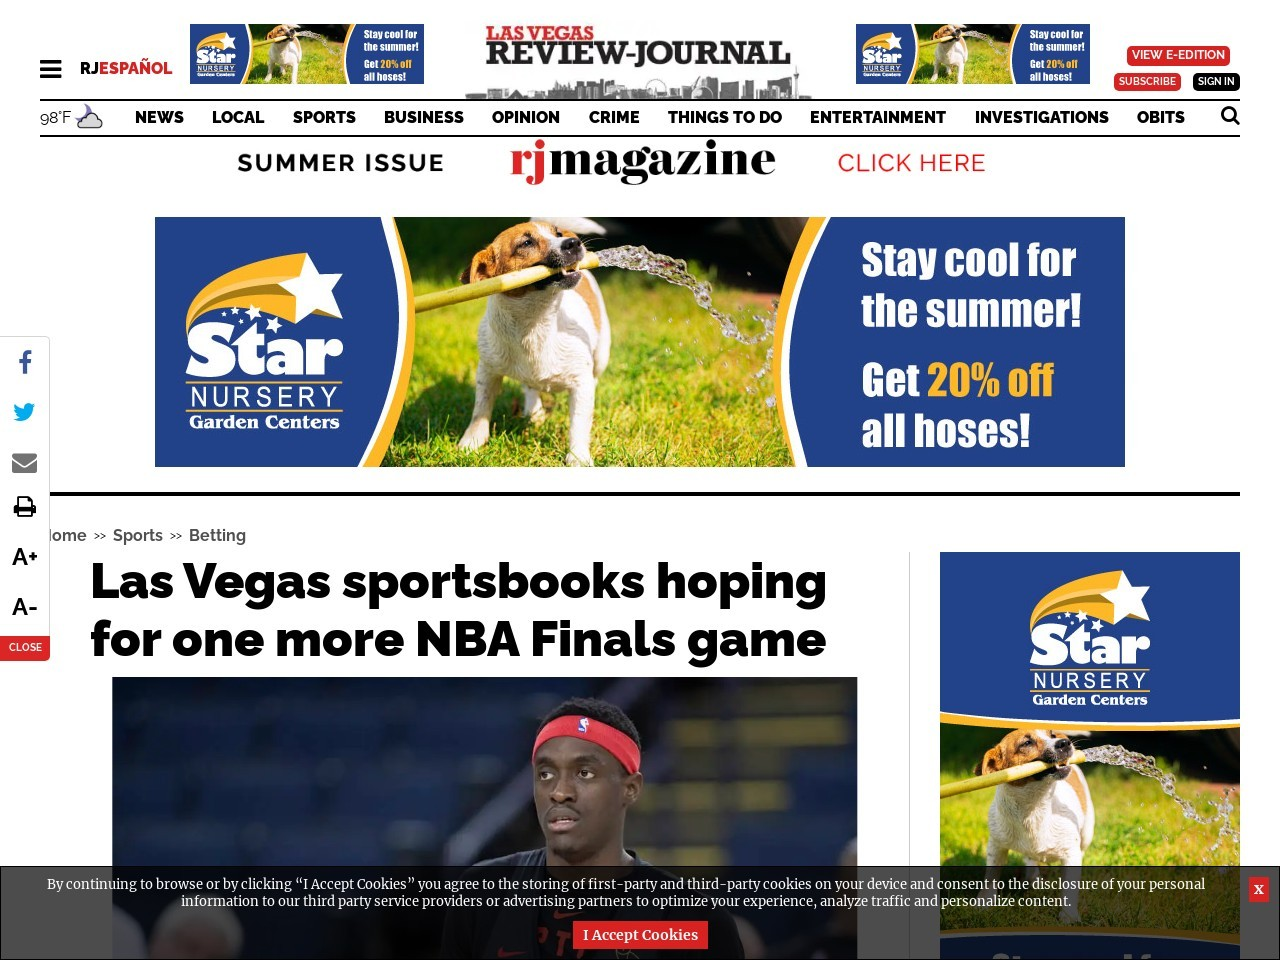 Las Vegas sportsbooks hoping for one more NBA Finals game